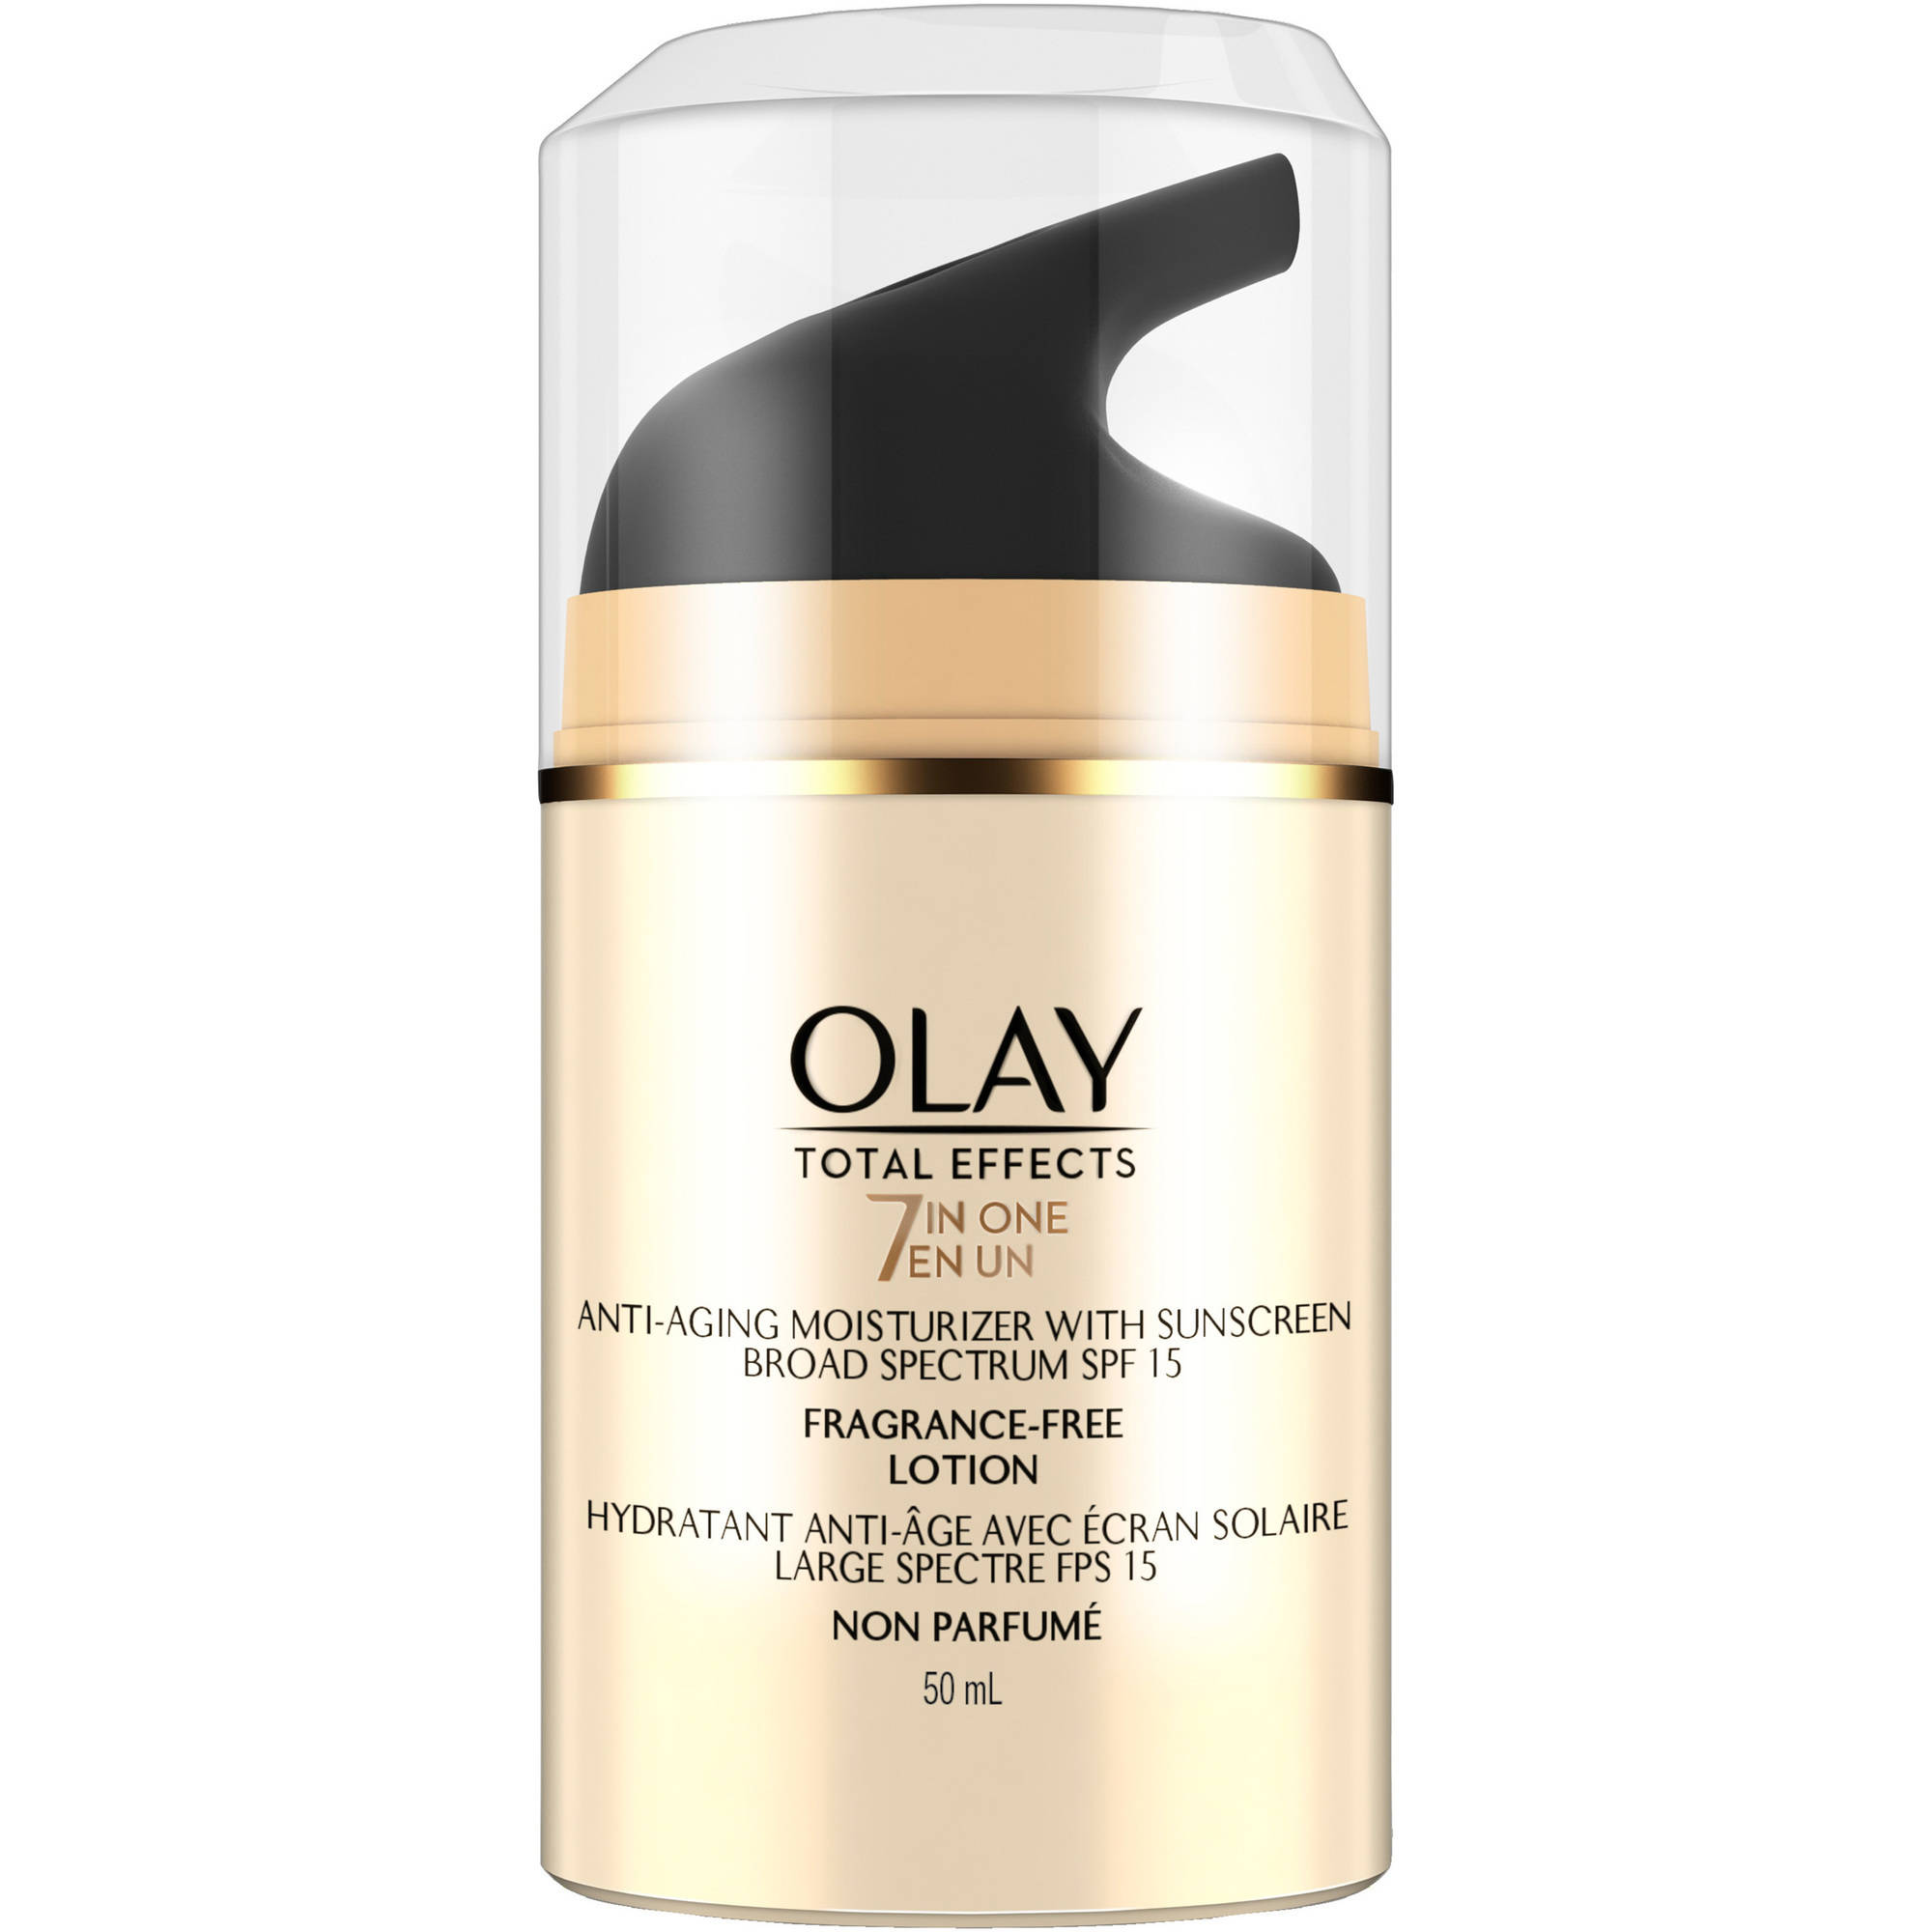 Olay Total Effects Fragrance Free Anti-Aging Moisturizer with Sunscreen, SPF 15, 1.7 fl oz